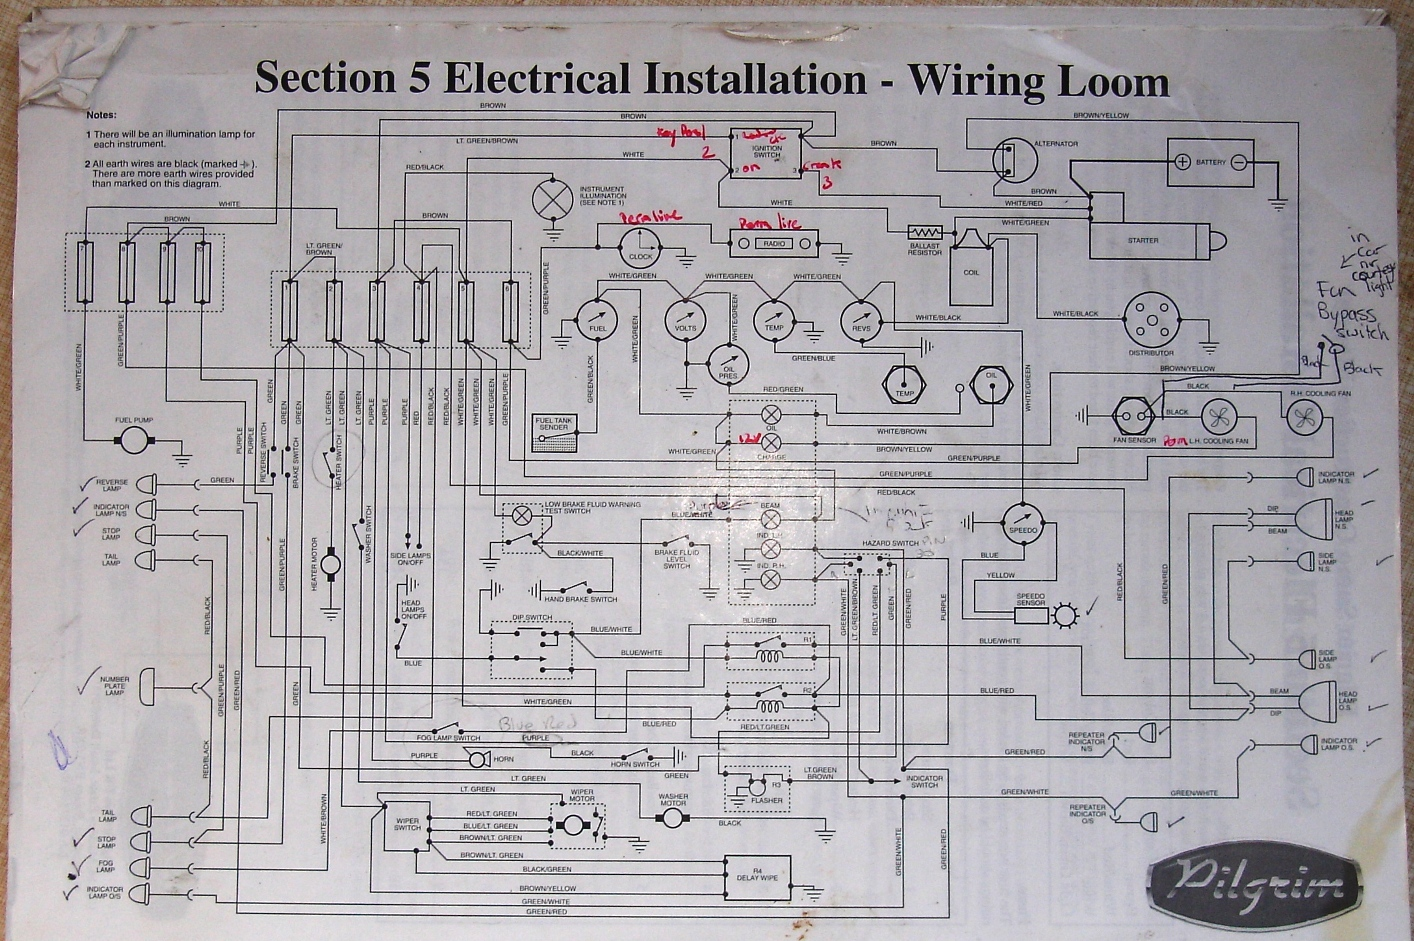 Wiring Diagram And Here Is A Copy Of Get Free Image About Wiring